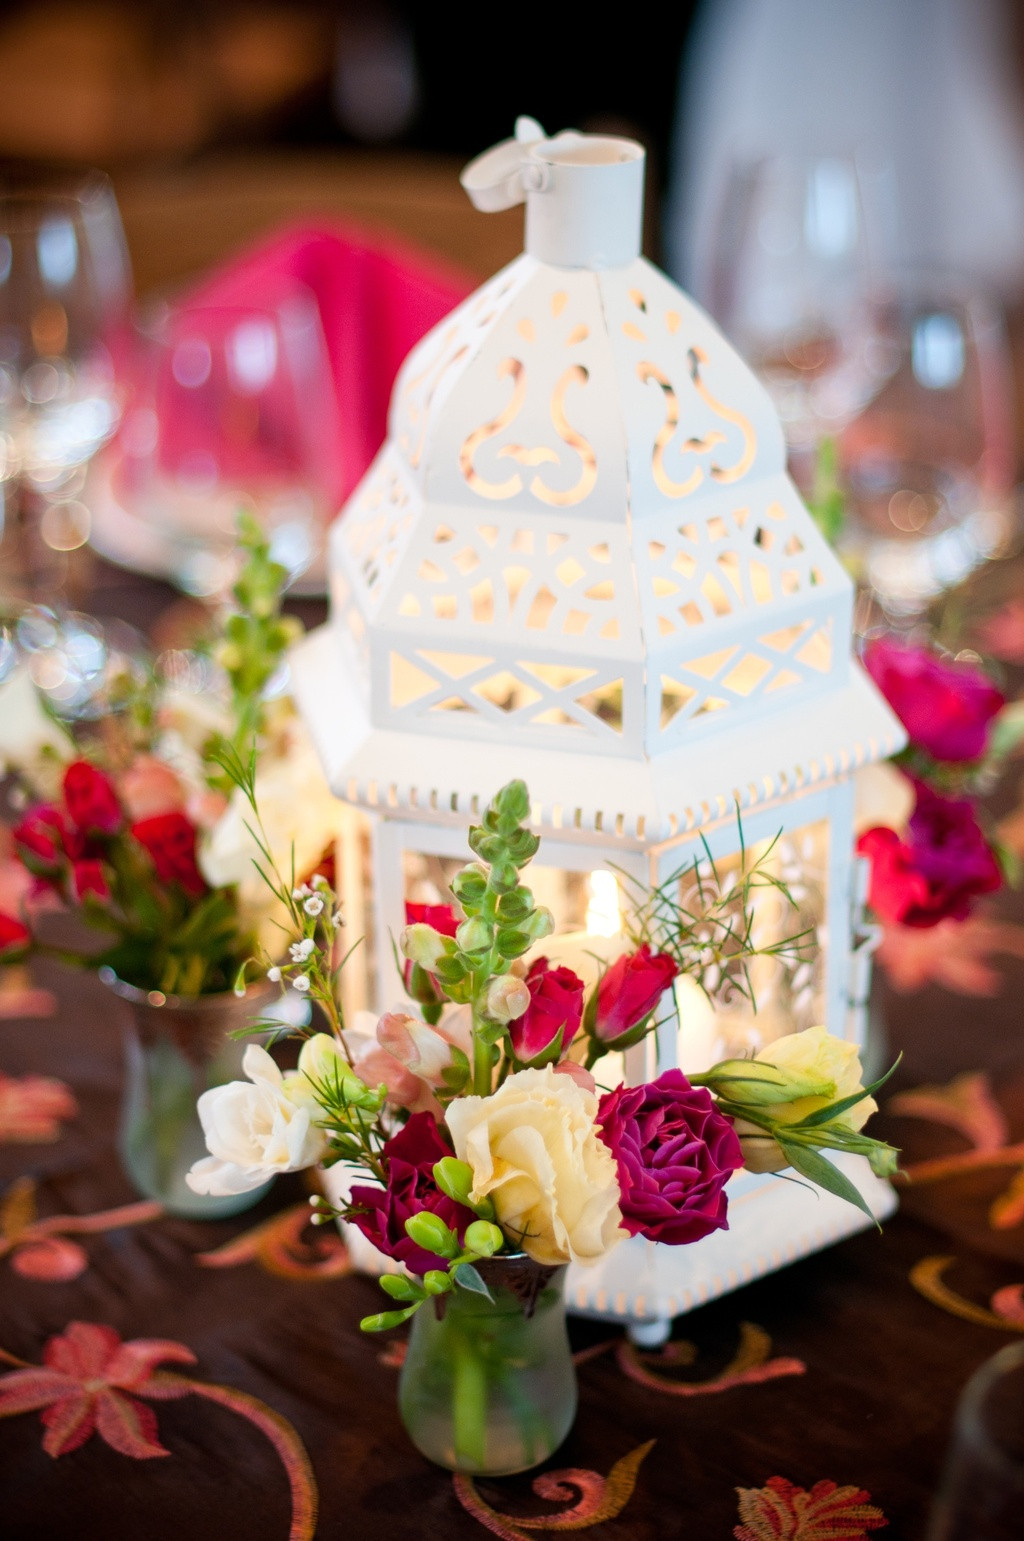 Best ideas about DIY Wedding Reception . Save or Pin DIY wedding reception centerpiece with pink wedding Now.